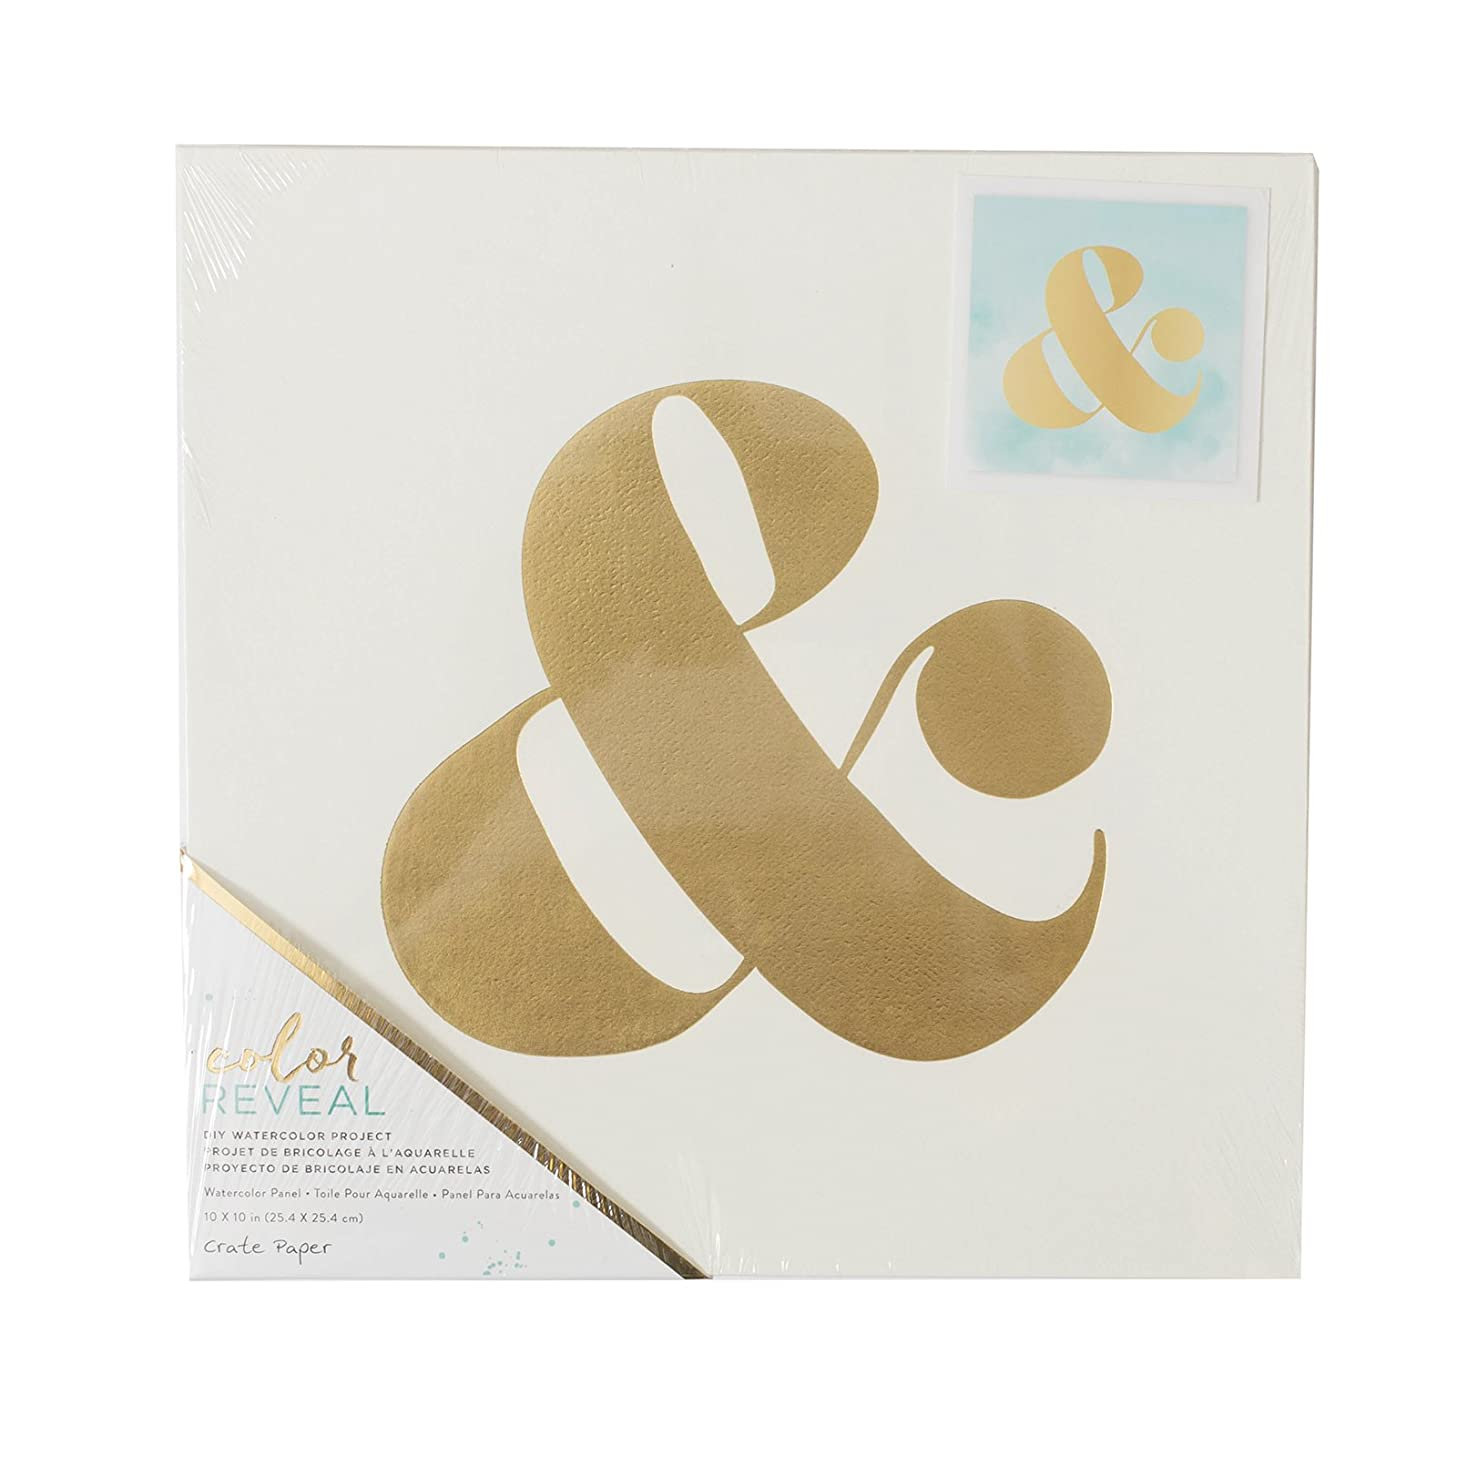 American Crafts Crate Paper Watercolor Panel Color Reveal 10 x 10 Inch Ampersand